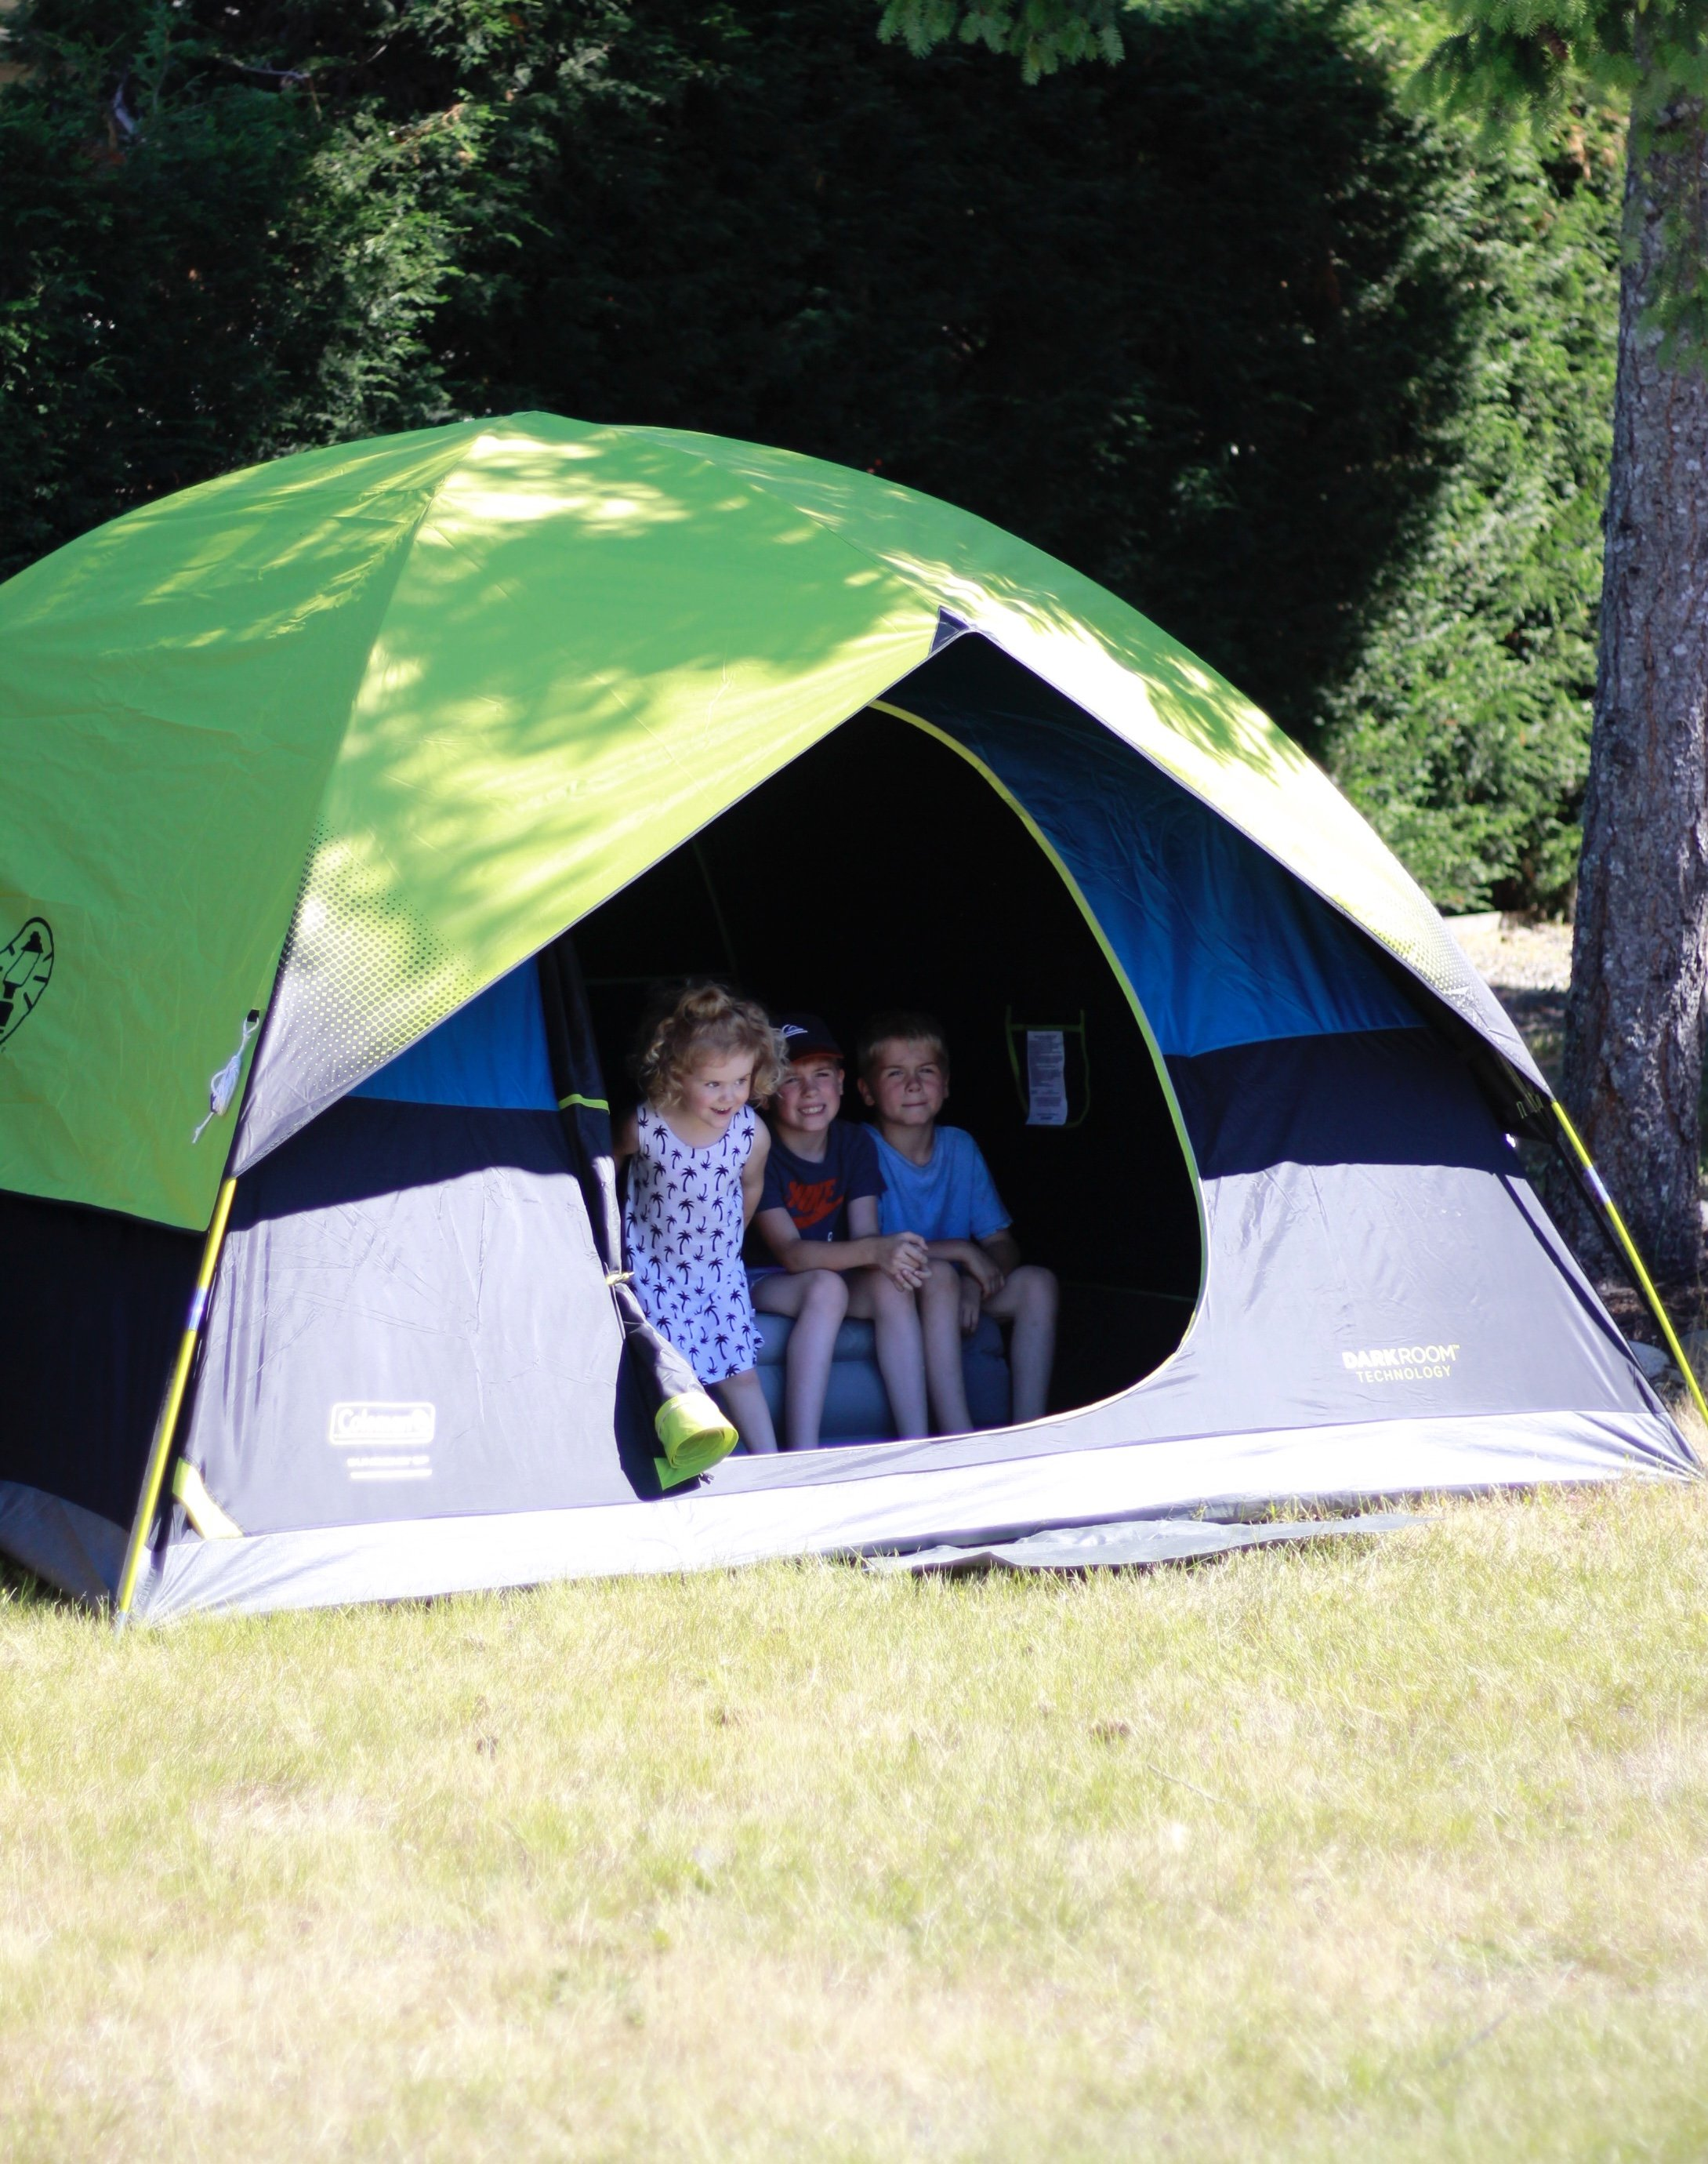 Get Outdoors With Coleman USA. Download the App and instantly get step by step instructions on how to set up and take down your tent #getoutdoors #colemanusa #coleman www.whitepicketfarmhouse.com